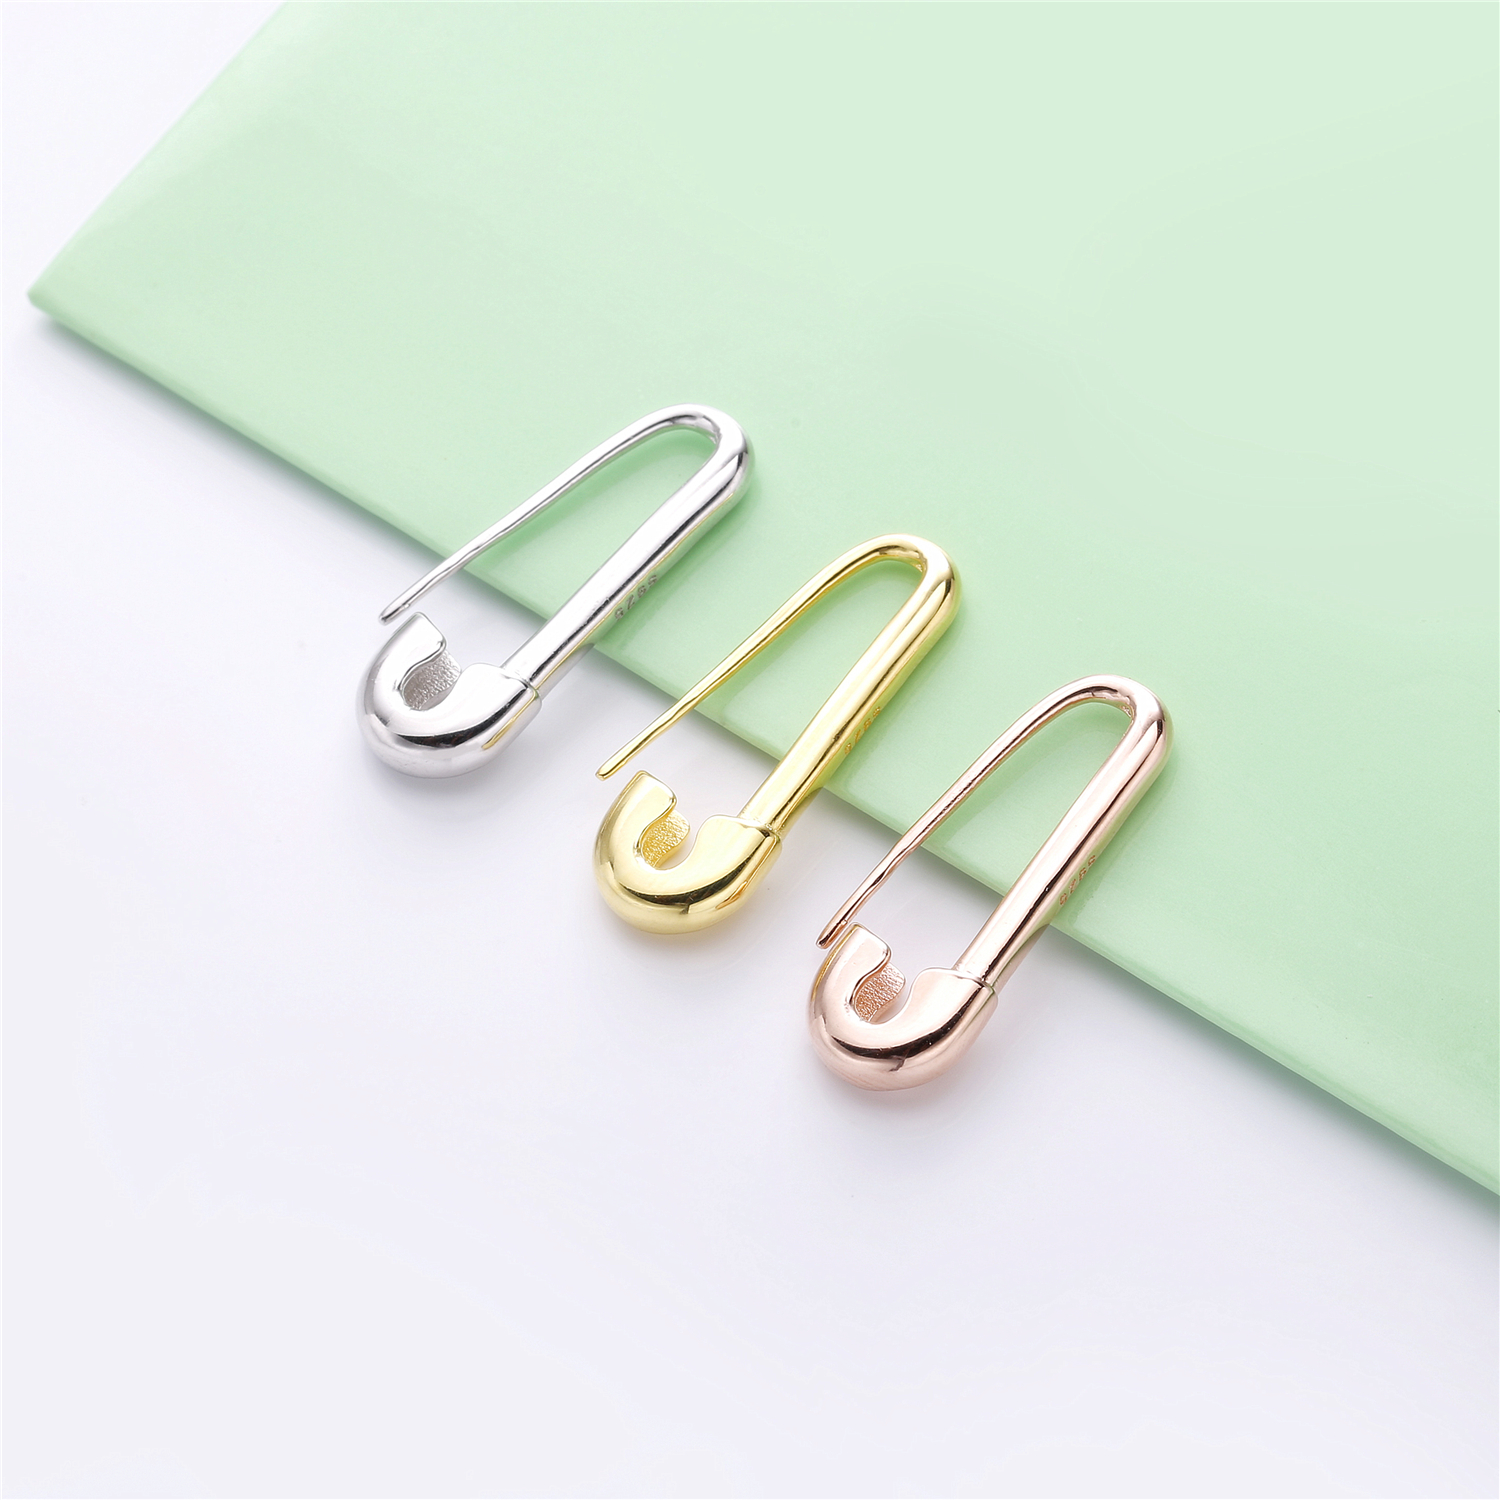 Moonmory 925 Sterling Silver Clips Safety Pin Single Ear Earring Left Right Both Punk Rock Fashionable For Women Wedding Jewelry in Drop Earrings from Jewelry Accessories